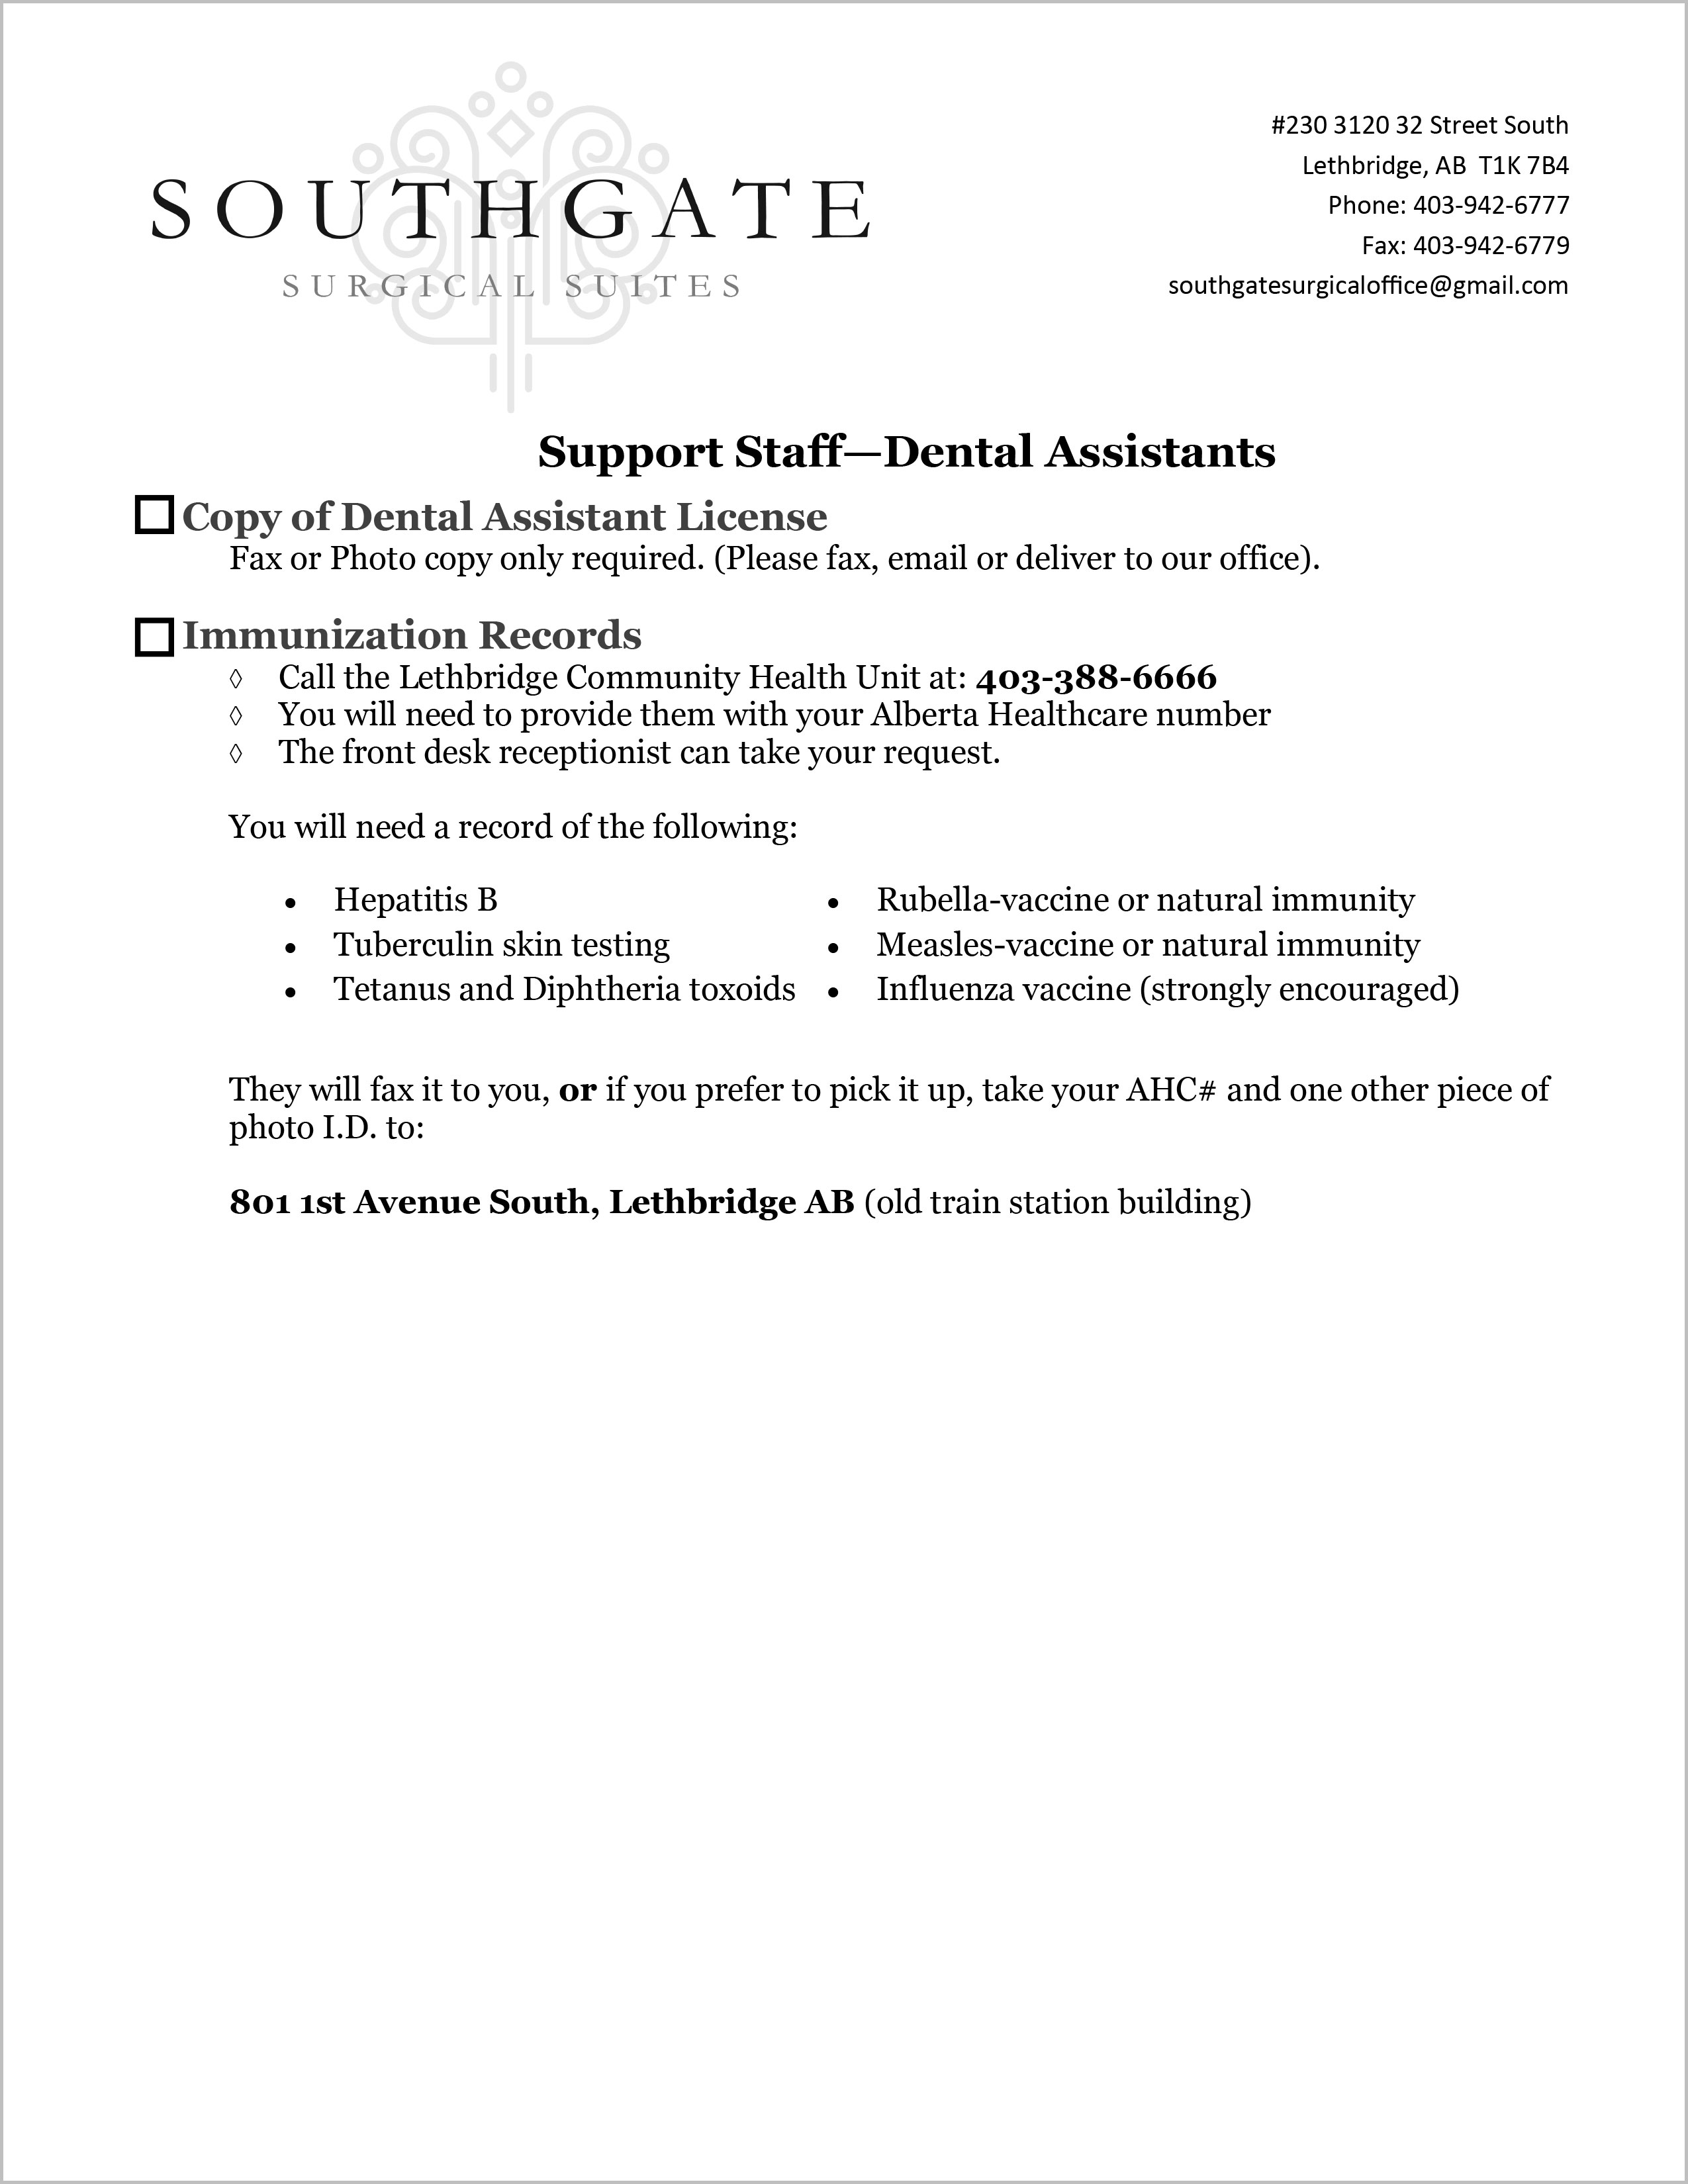 Staff Dental Assistants Form | Southgate Surgical Suites